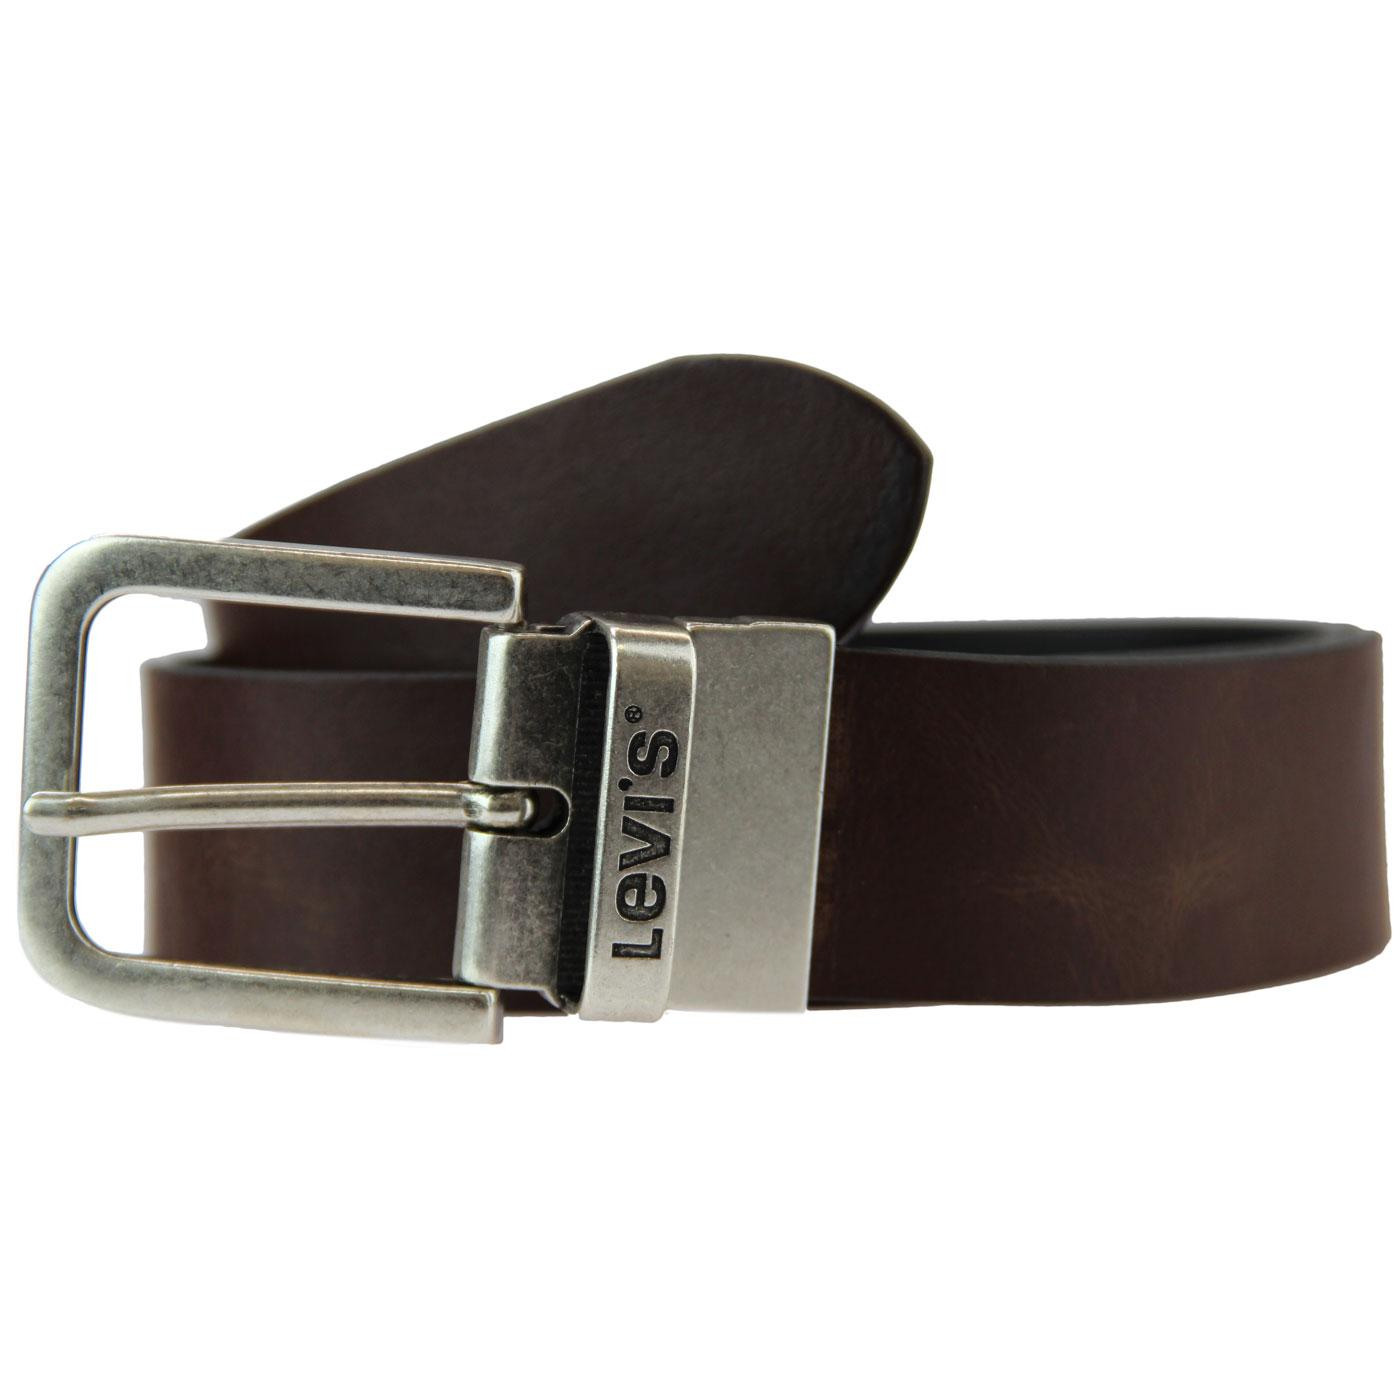 LEVI'S Men's Retro Mod Reversible Leather Belt